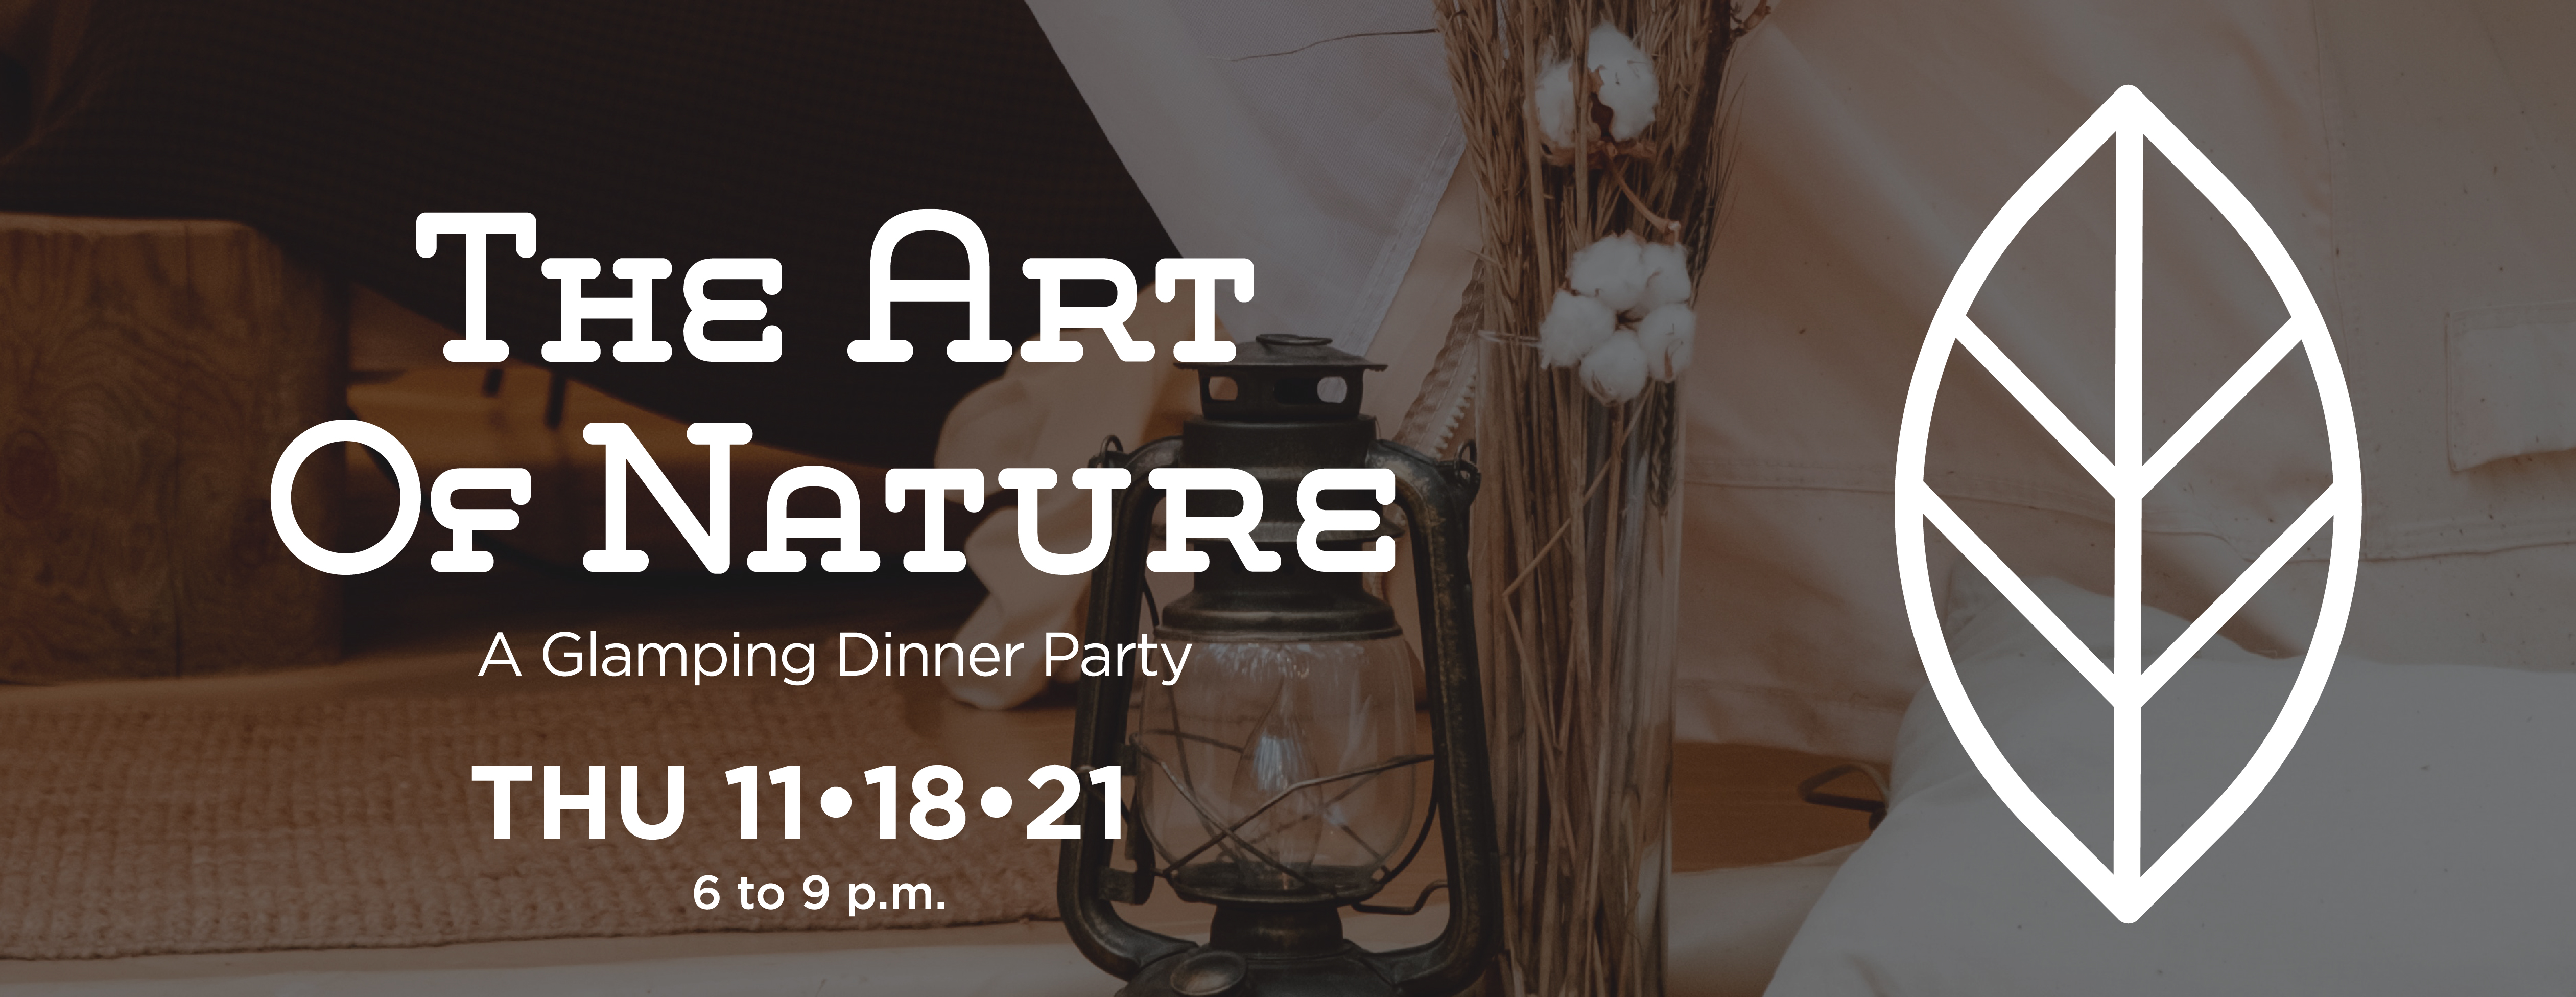 The Art of Nature: A Glamping Diner Party